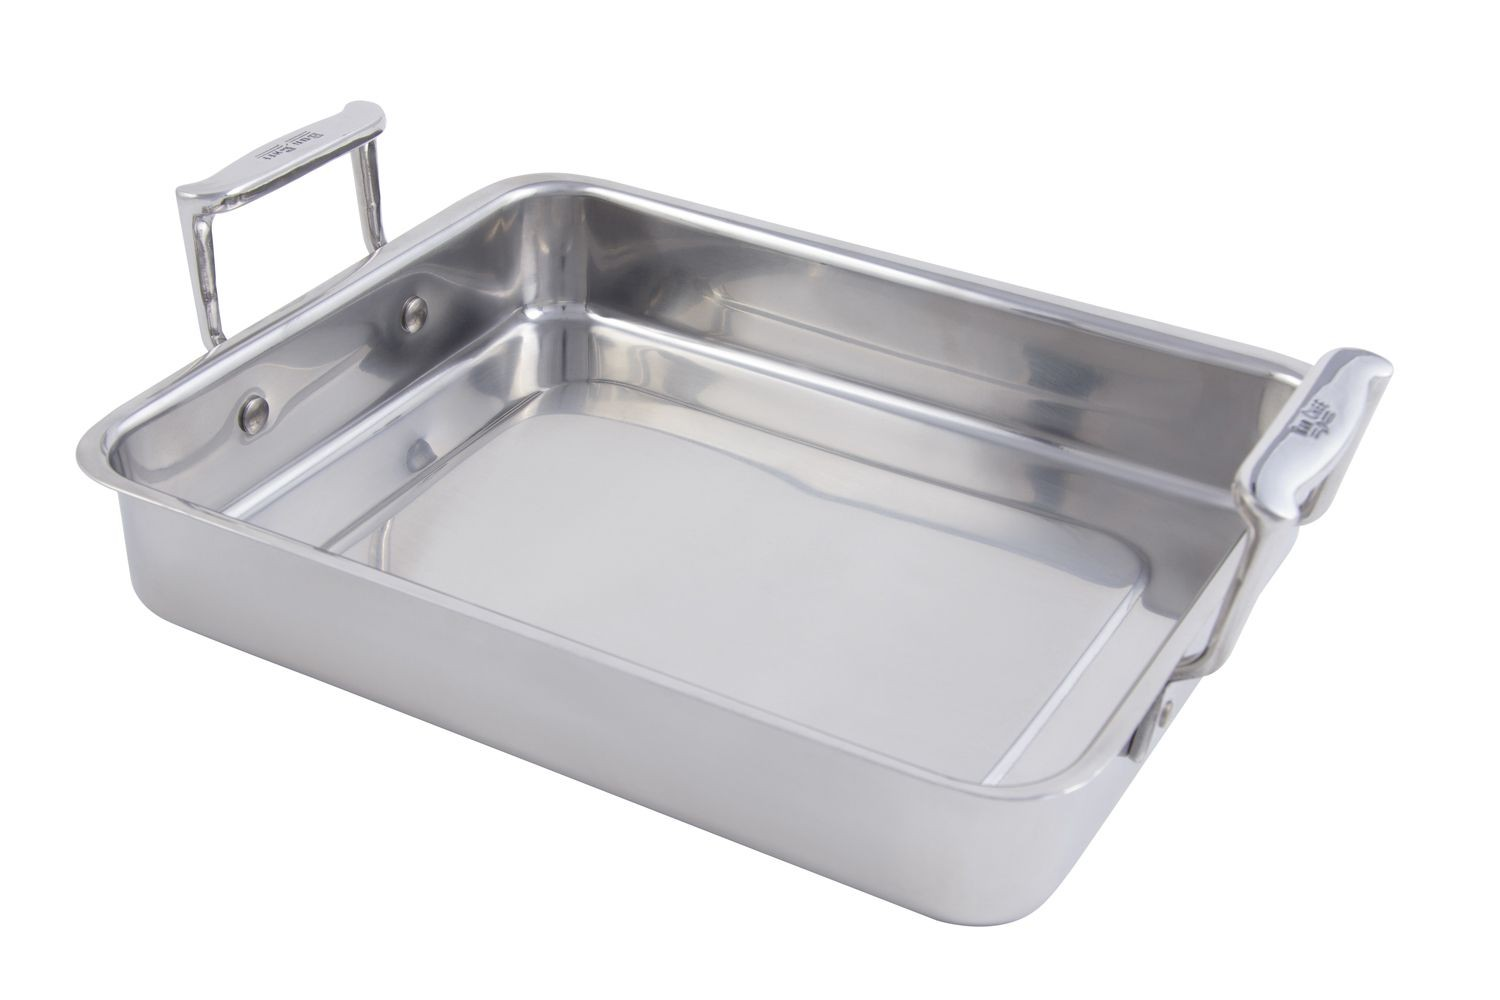 Bon Chef 60013 Cucina Small Stainless Steel Food Pan with Handles, 3 Qt.